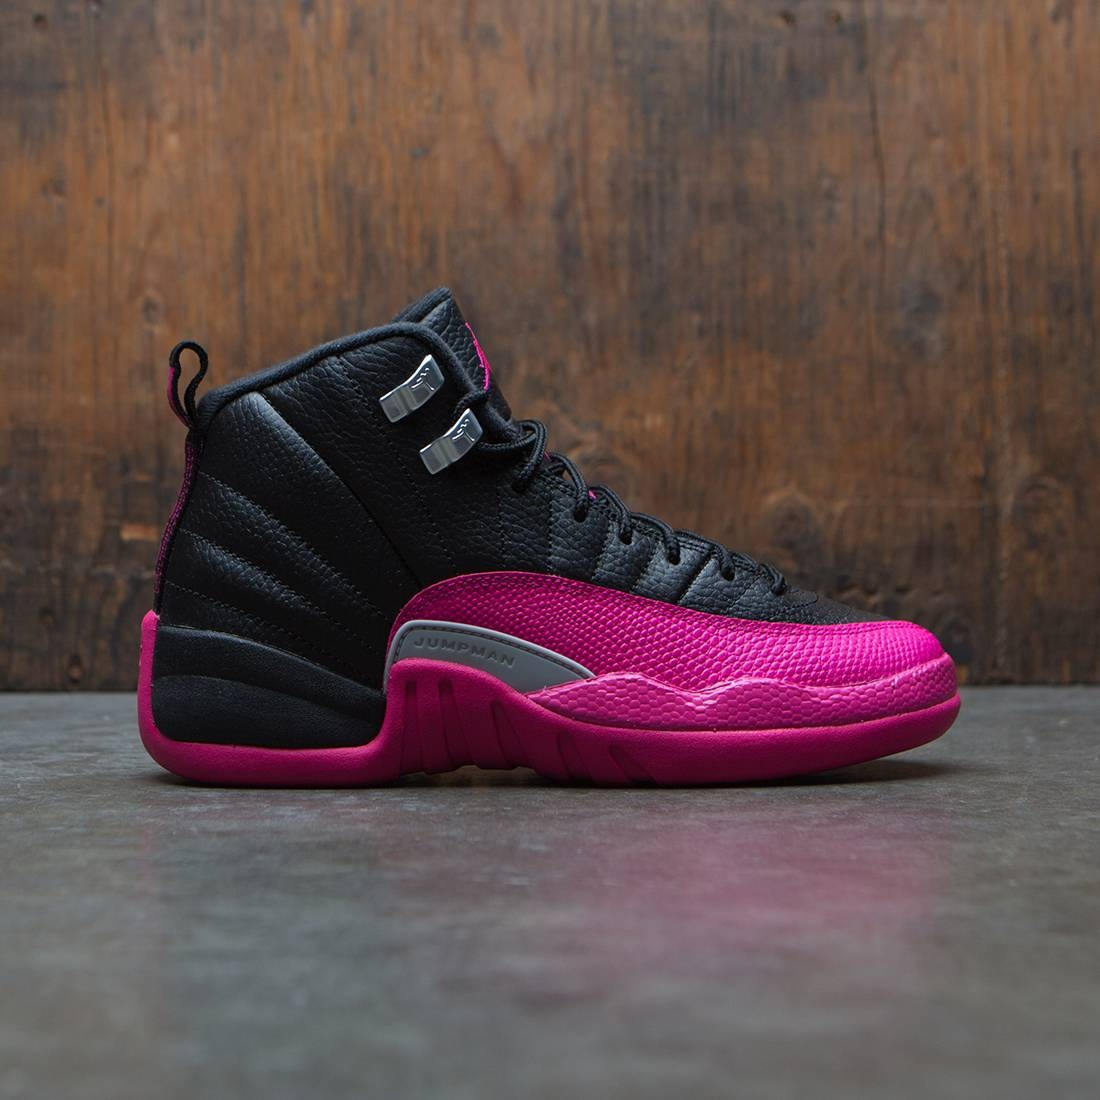 new product 5c1ae 1f592 Air Jordan 12 Retro (GS) Big Kids Girls' (black / deadly pink-metallic  silver)